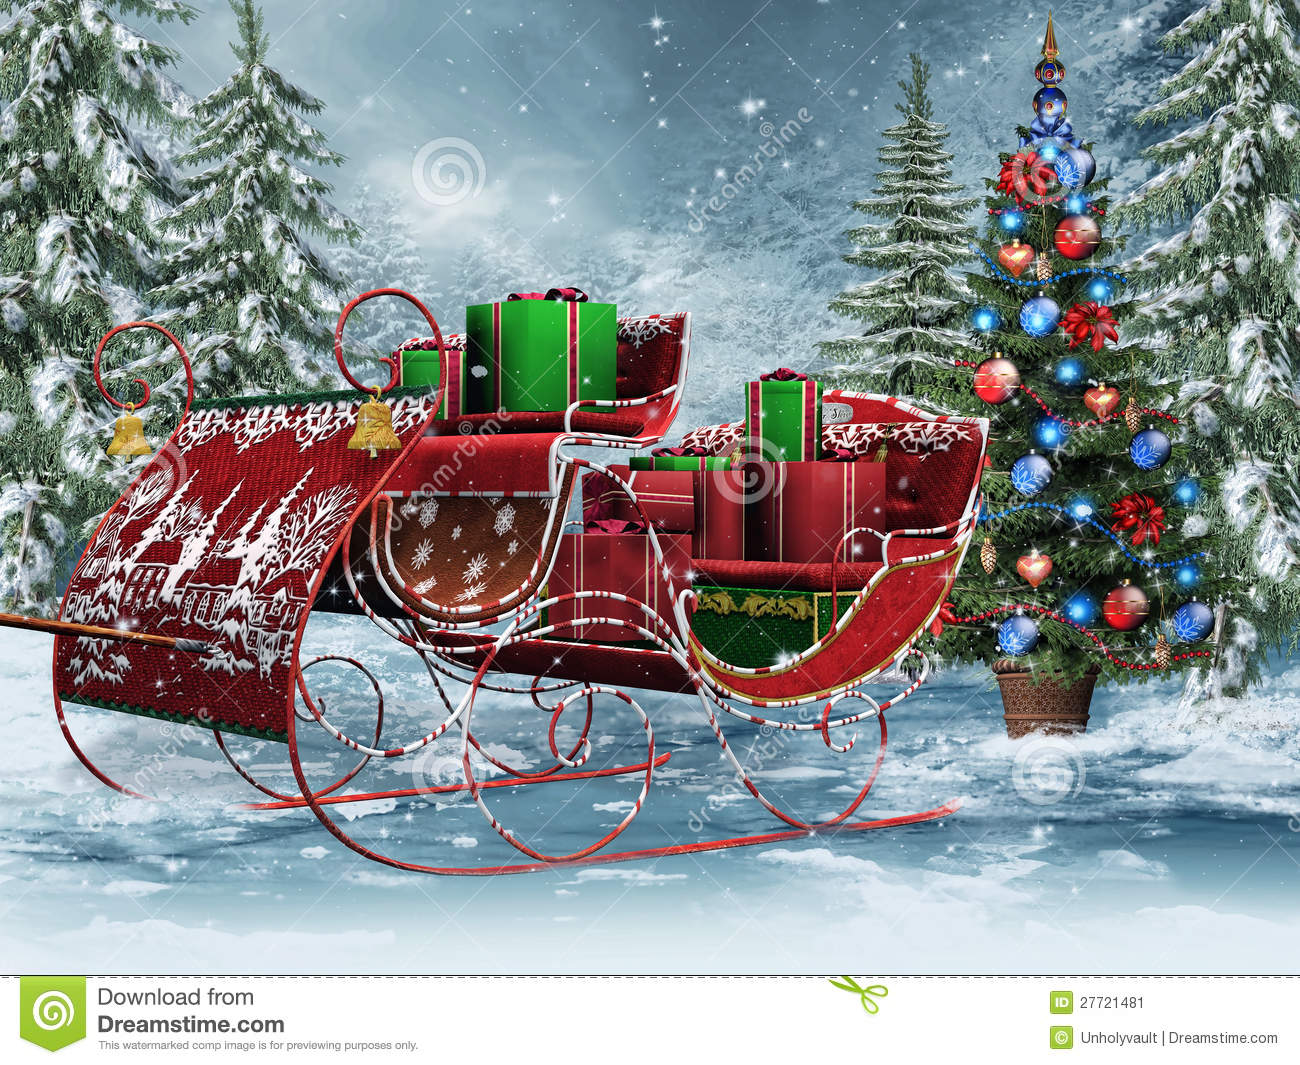 Vintage Sleigh With Gifts Stock Image - Image: 27721481